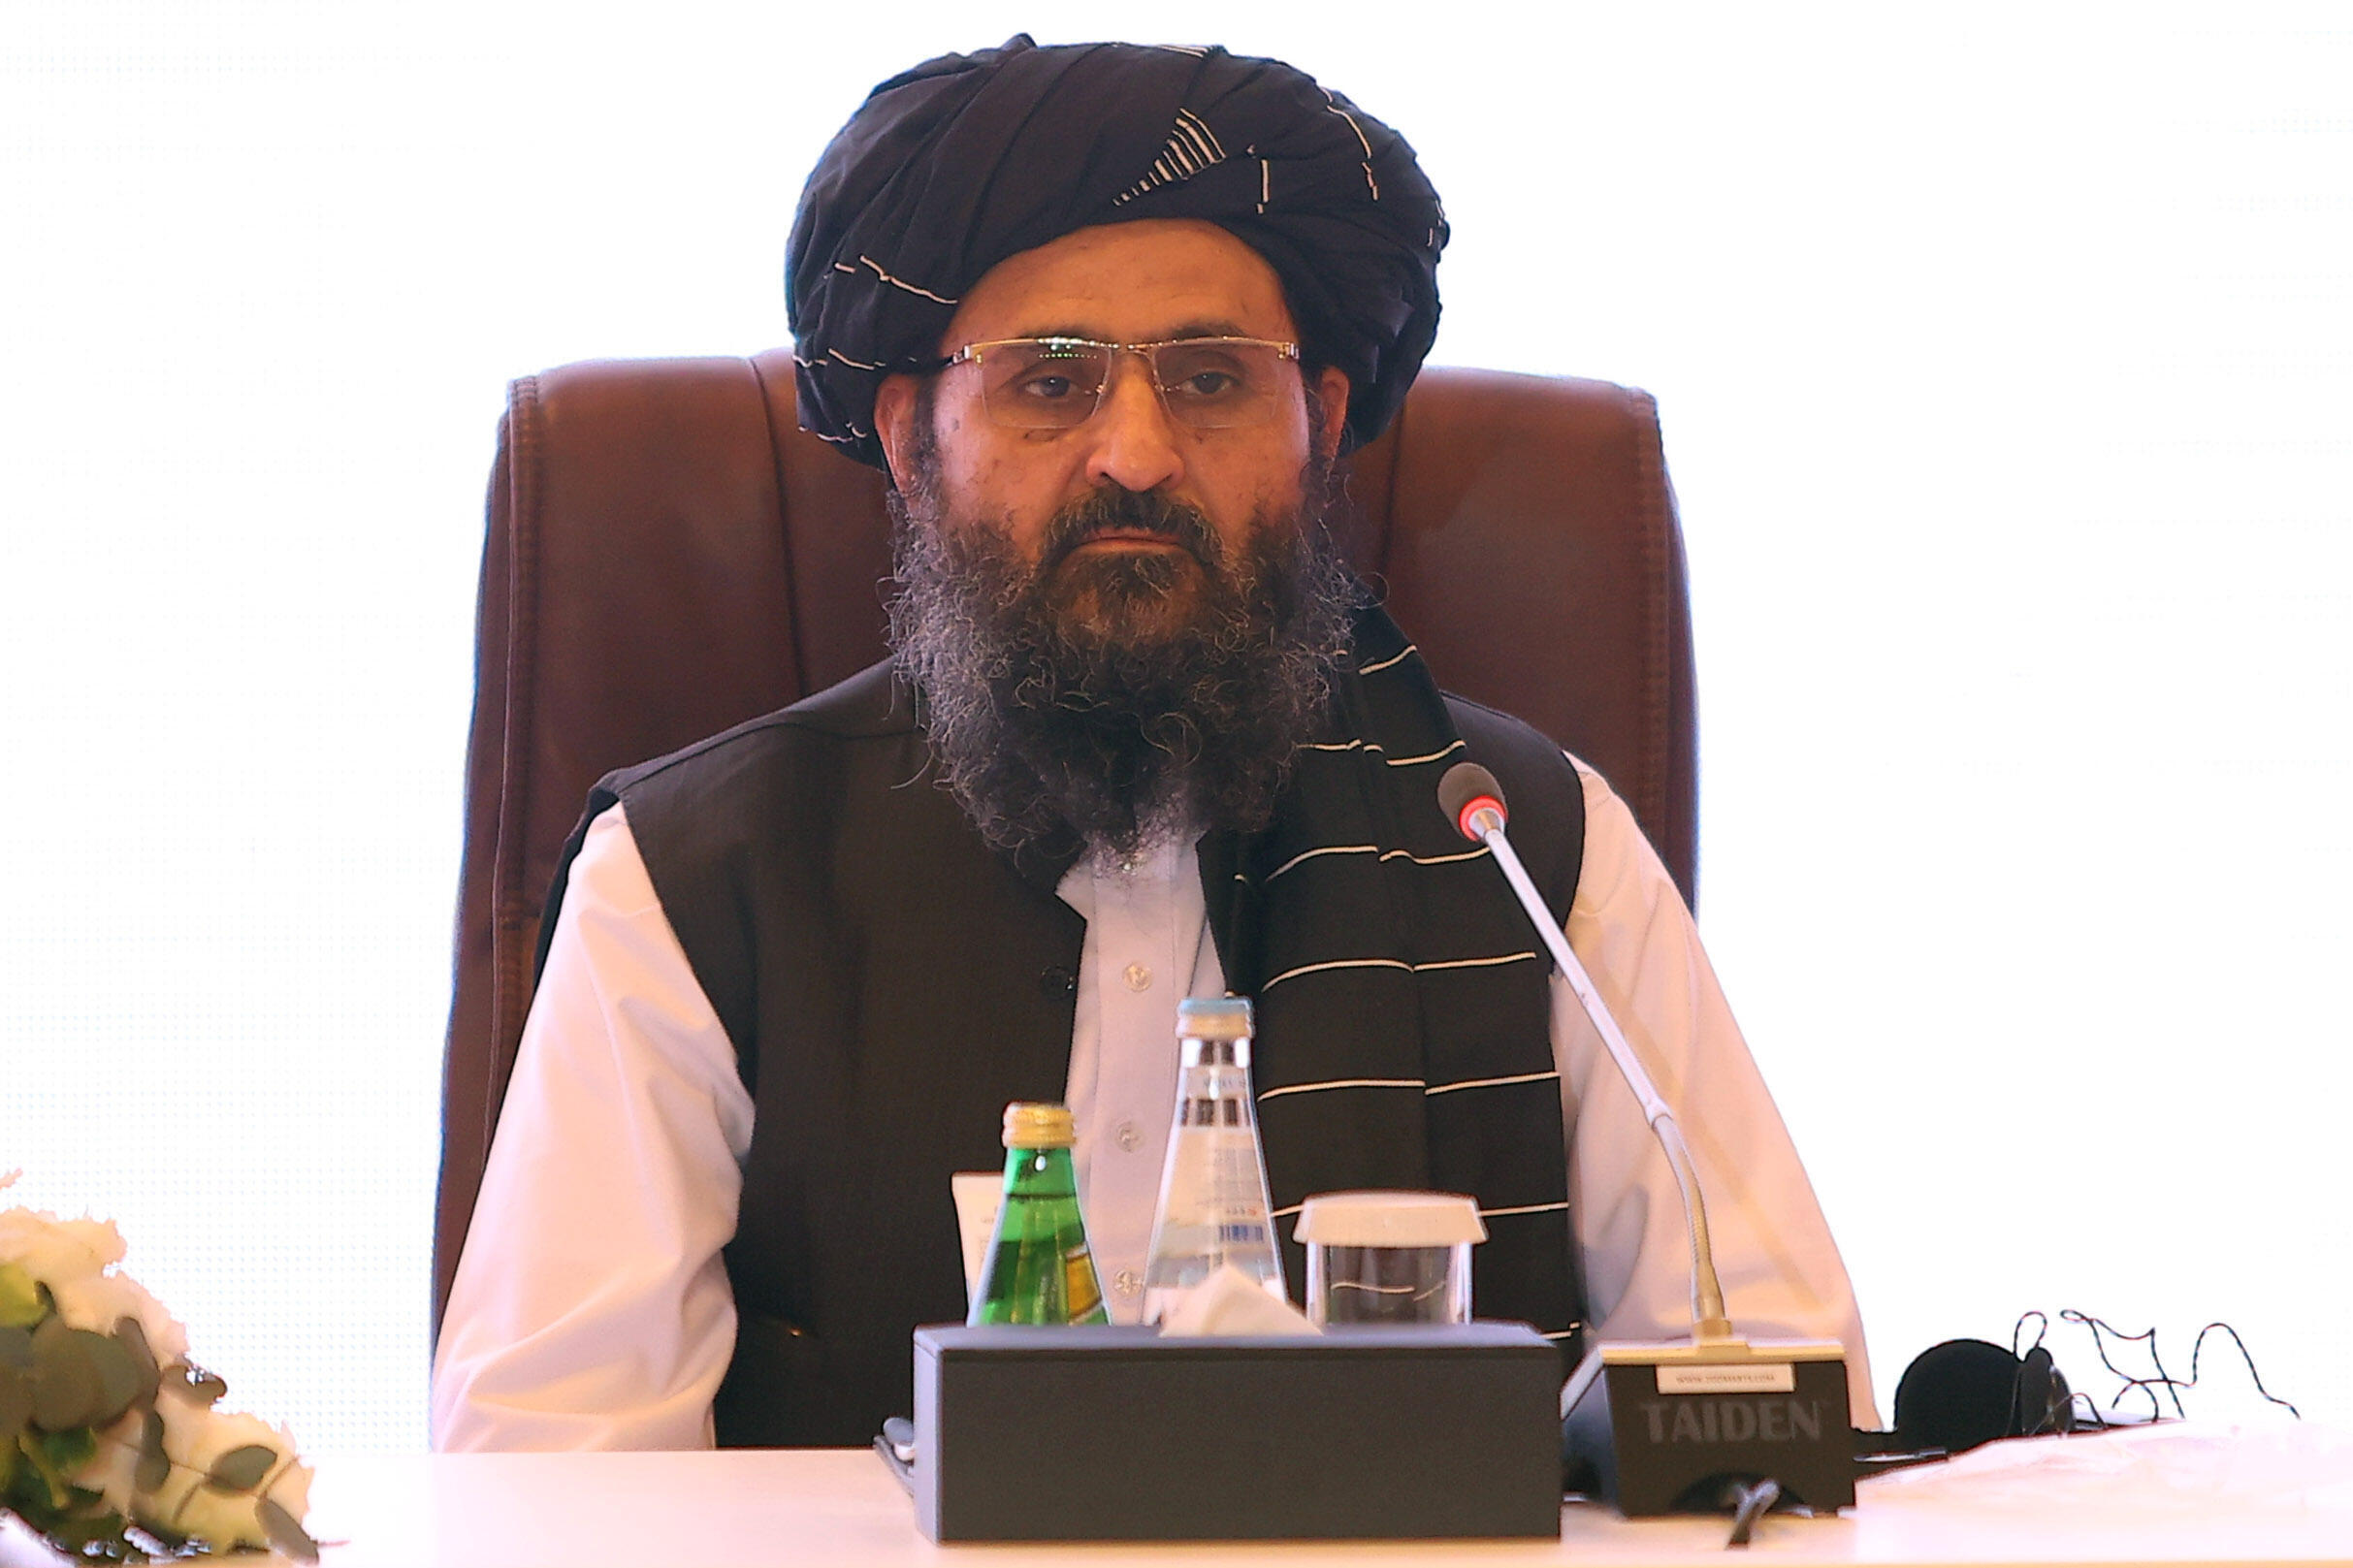 Taliban co-founder Abdul Ghani Baradar (pictured in Doha in July 2021) released an audio statement to squash rumours that he had been killed in a shootout between rival factions in Kabul